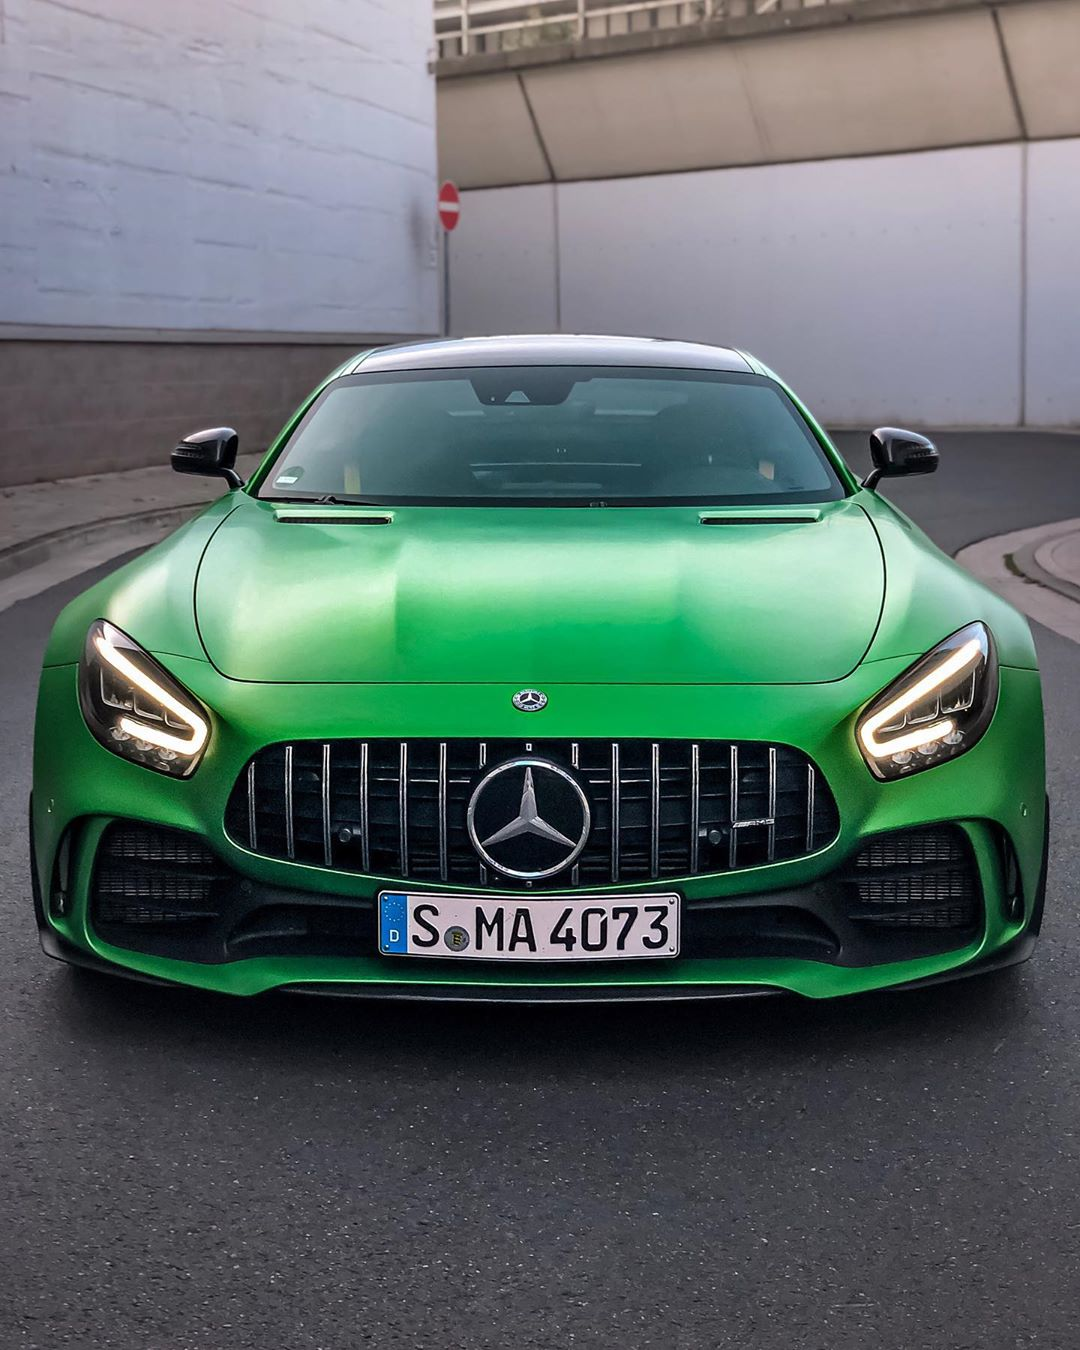 Hanover PARTY TIME💥✨🍏…massively colorful GT R rooaaarrs through Hanover🙋♂️ @mercedesamg #mercedesamg #mbsocialcar #amg #amggtr #gtr #amggtrpro #amggt #greenhellmagno #greenhell #automanntv